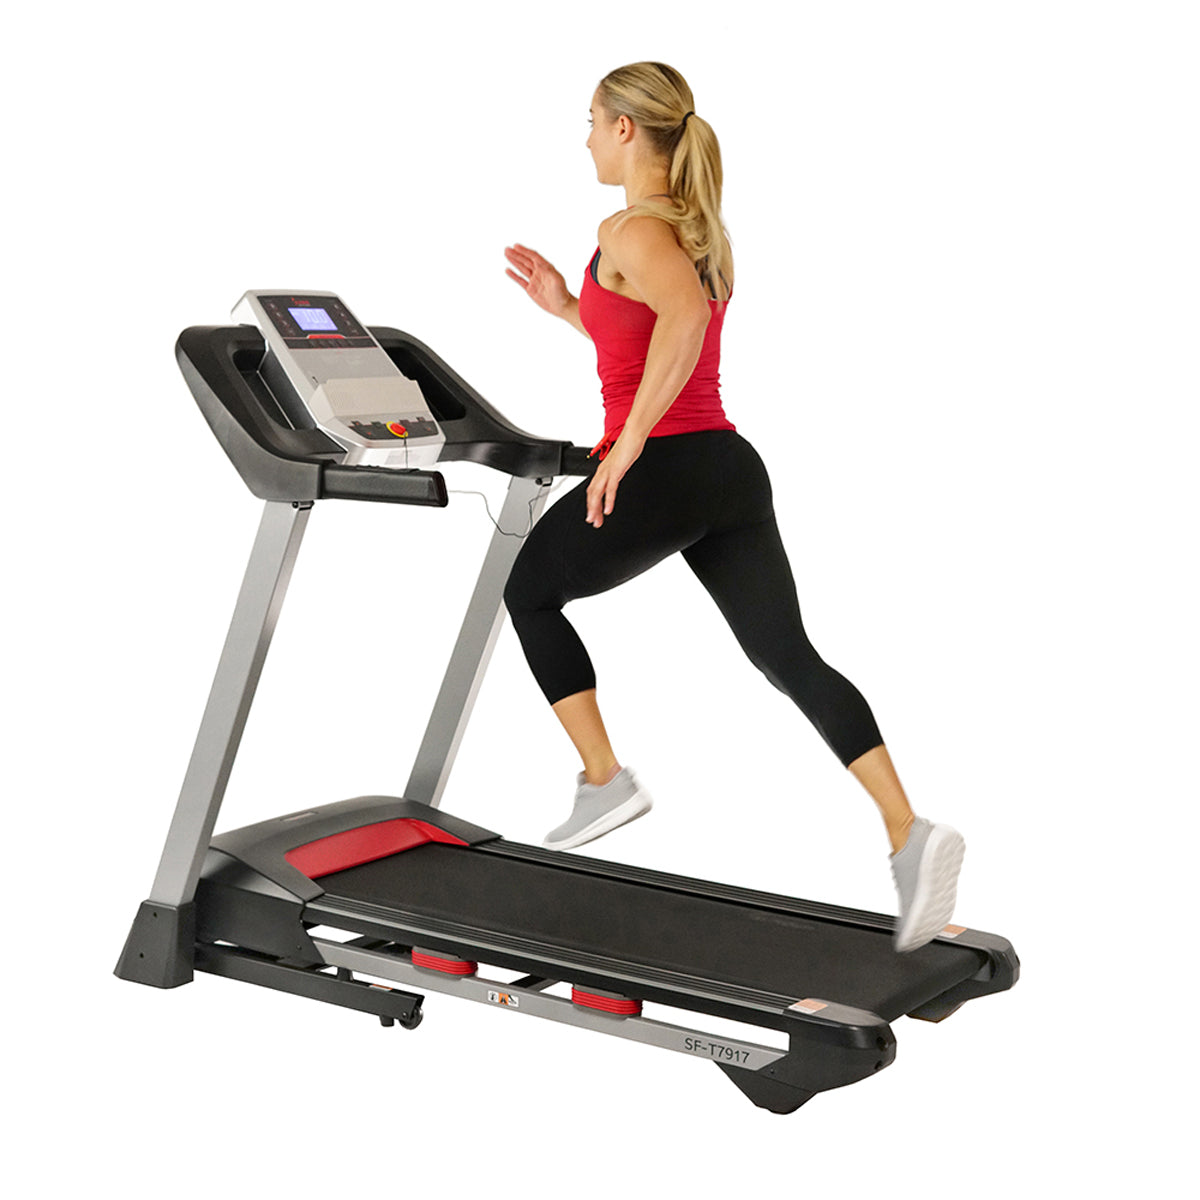 sunny-health-fitness-treadmills-incline-treadmill-bluetooth-speakers-USB-charging-function-SF-T7917-deck